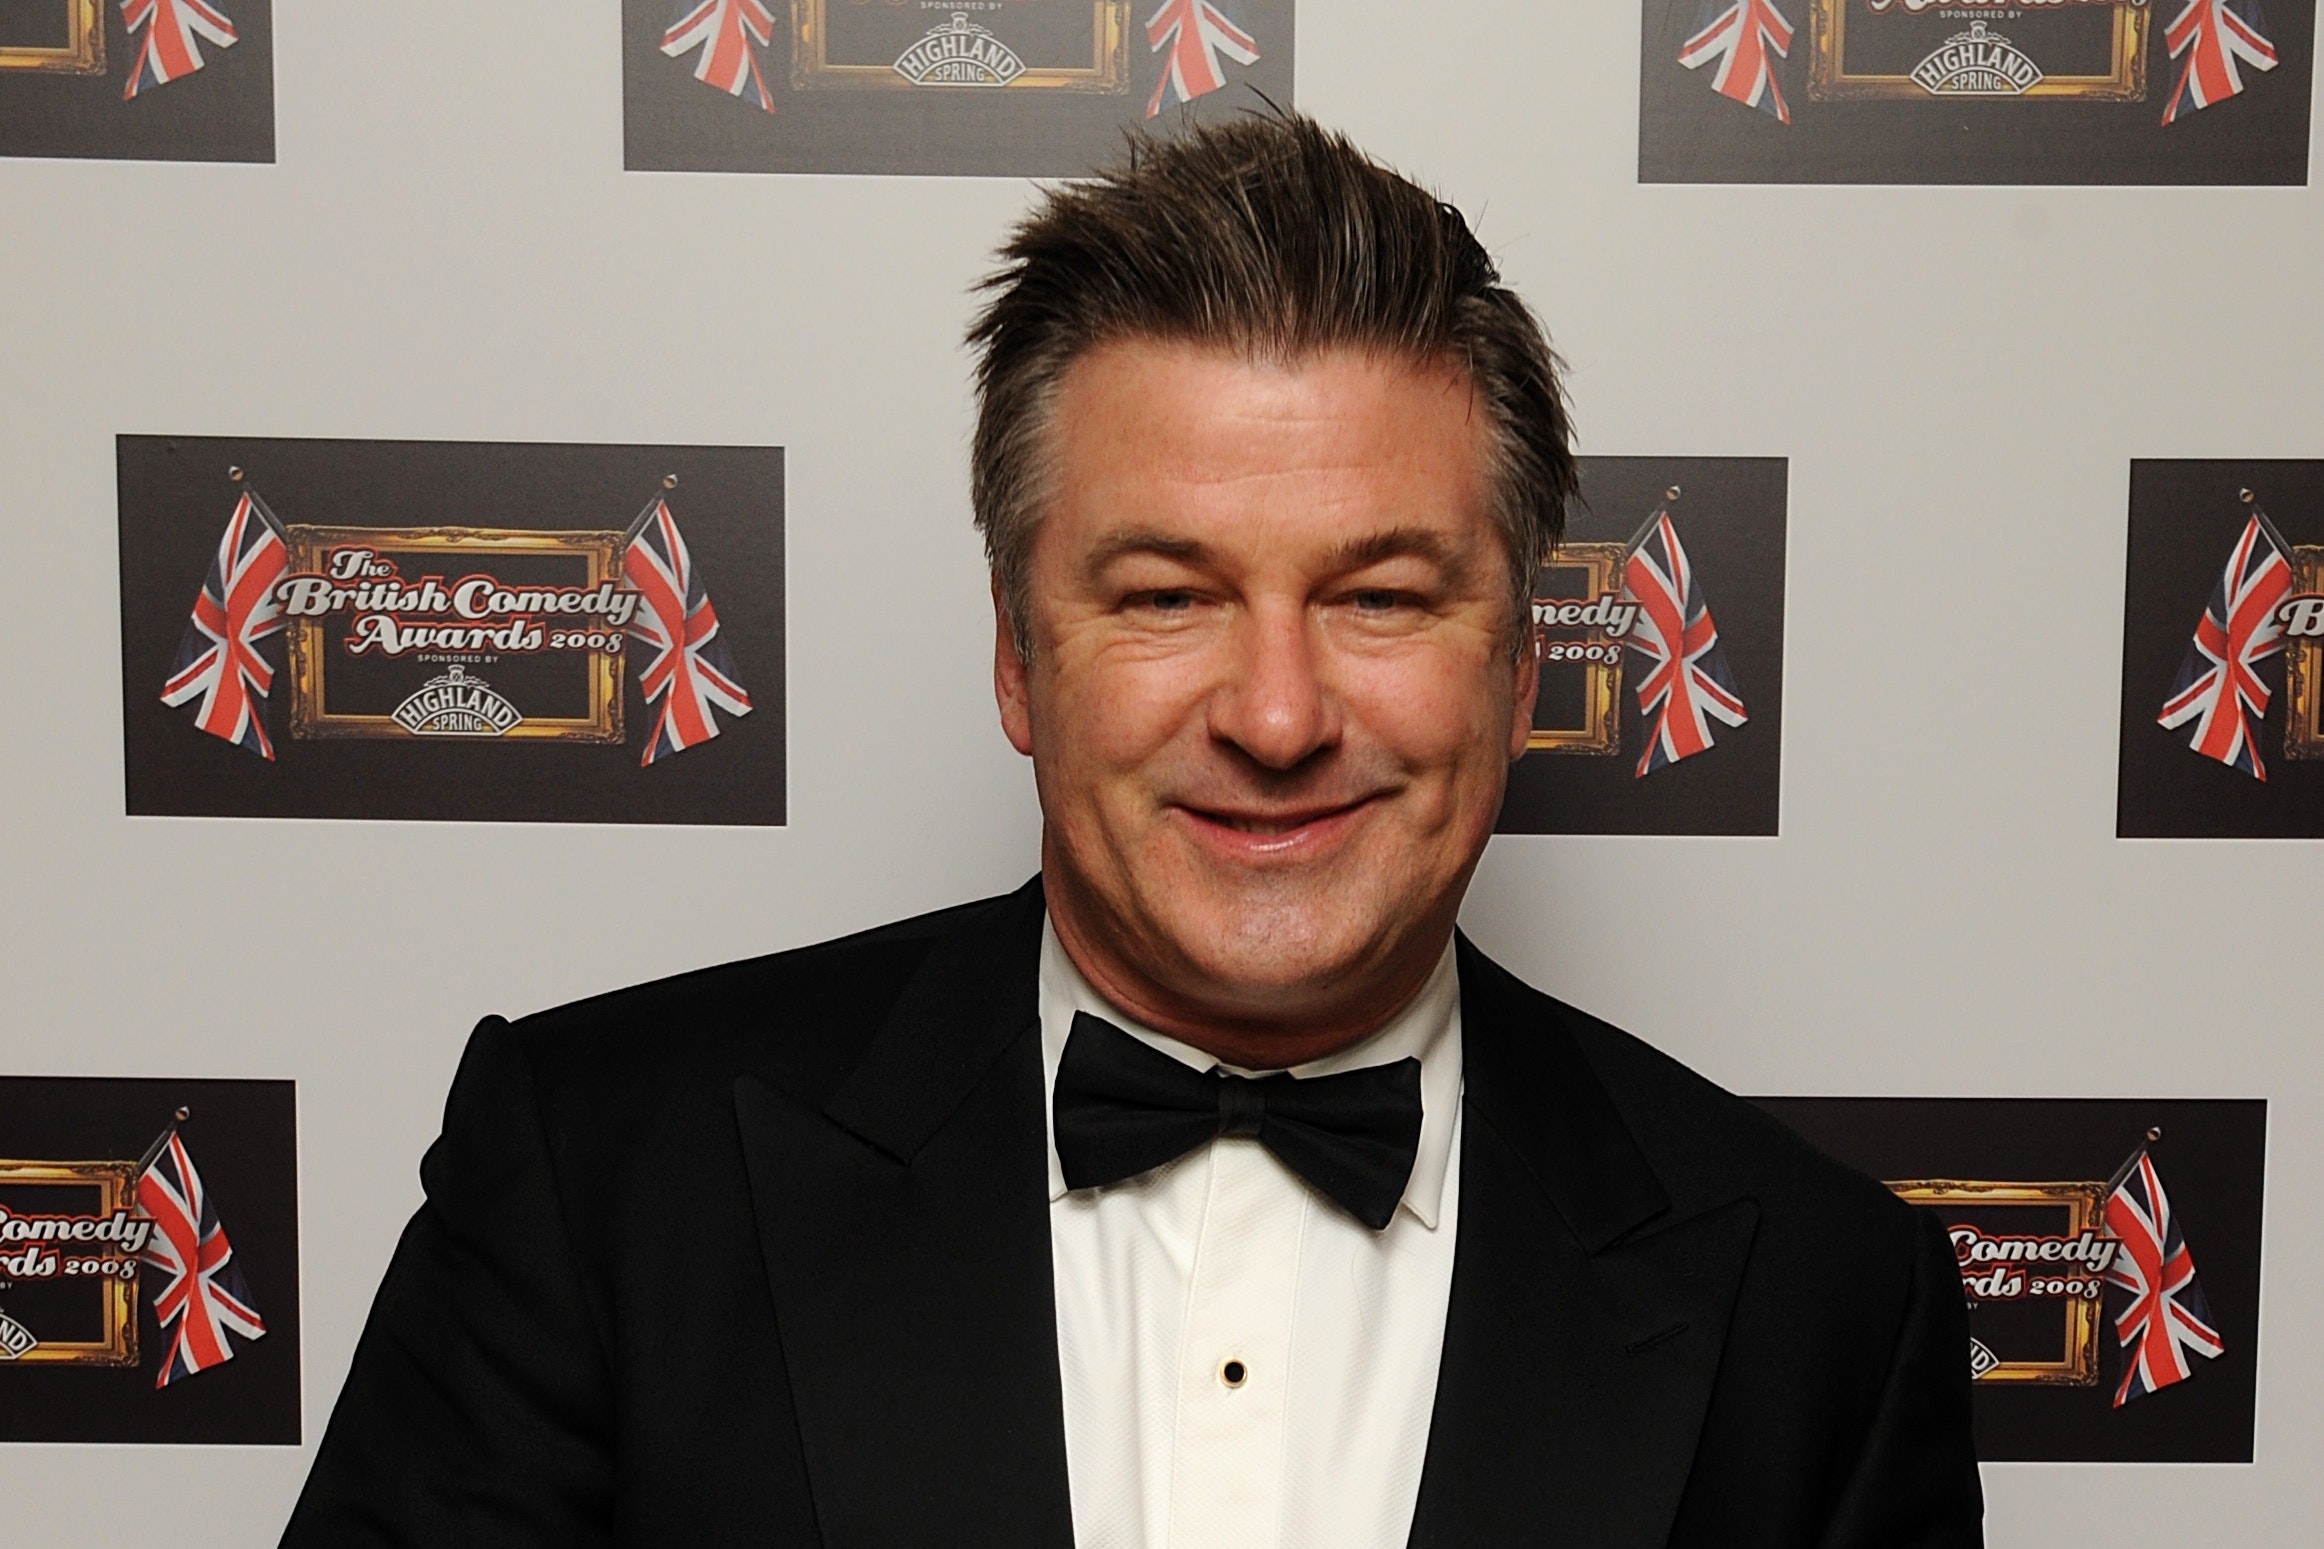 Alec Baldwin has insisted he would beat Donald Trump if he ran for president in 2020 (Ian West/PA)